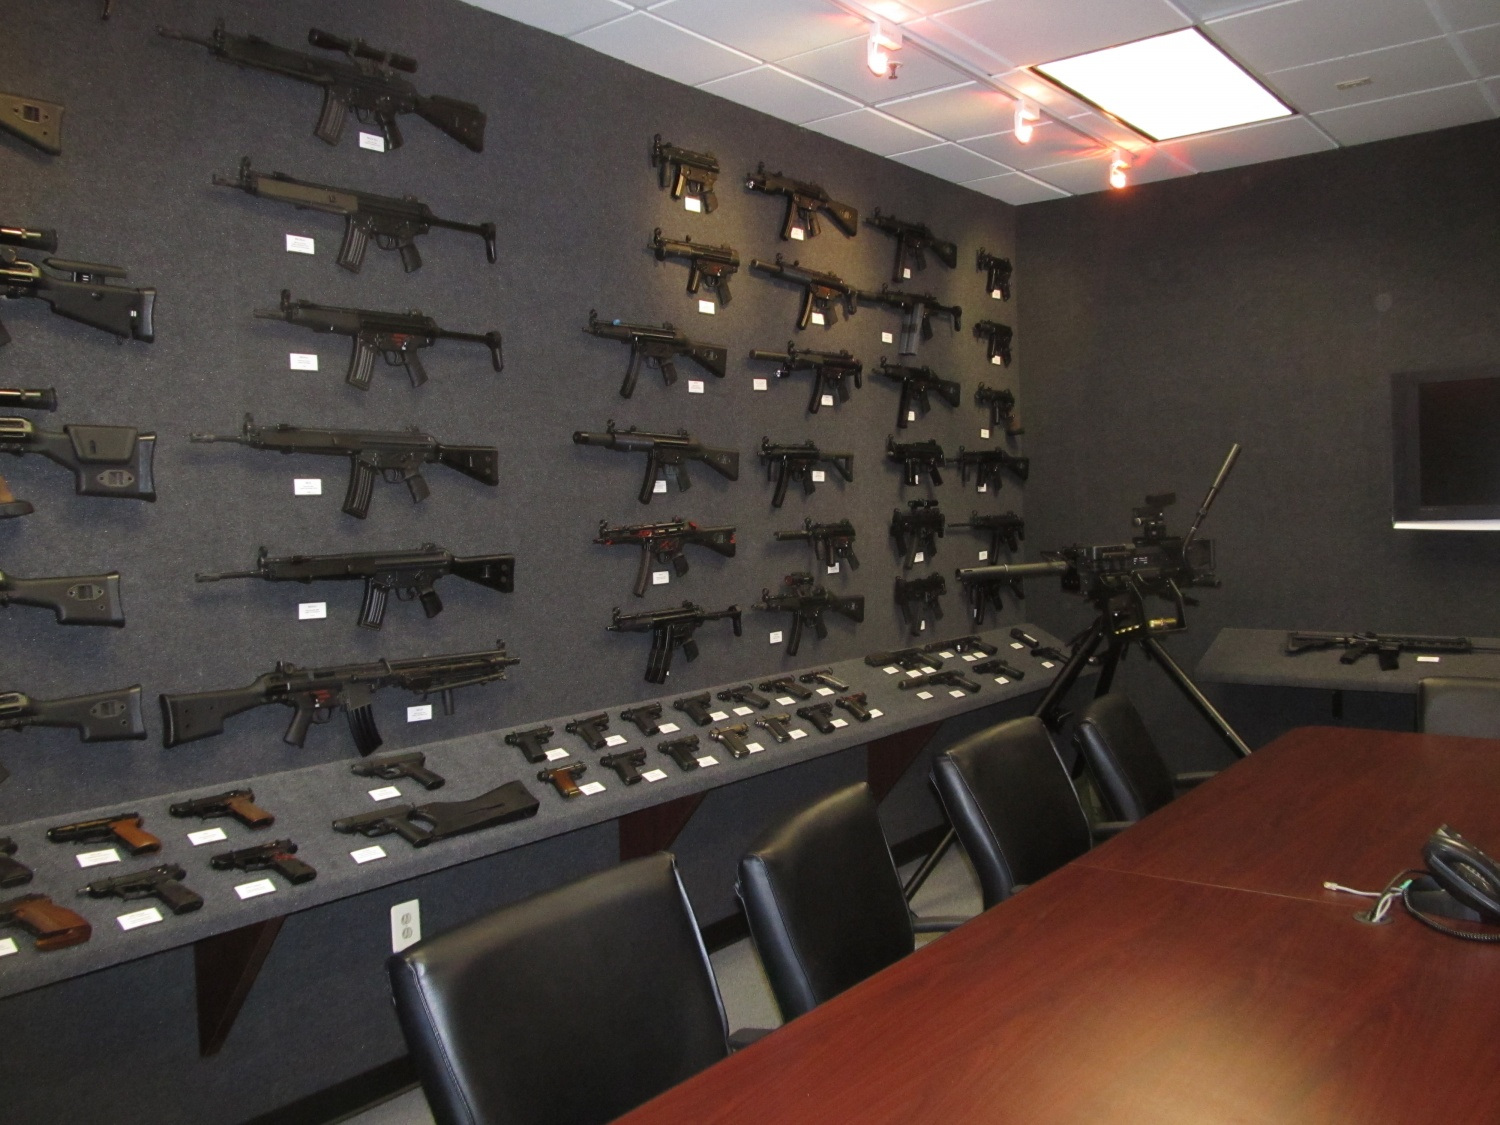 Room With Nothing In It: The Firearm BlogThe Firearm Blog